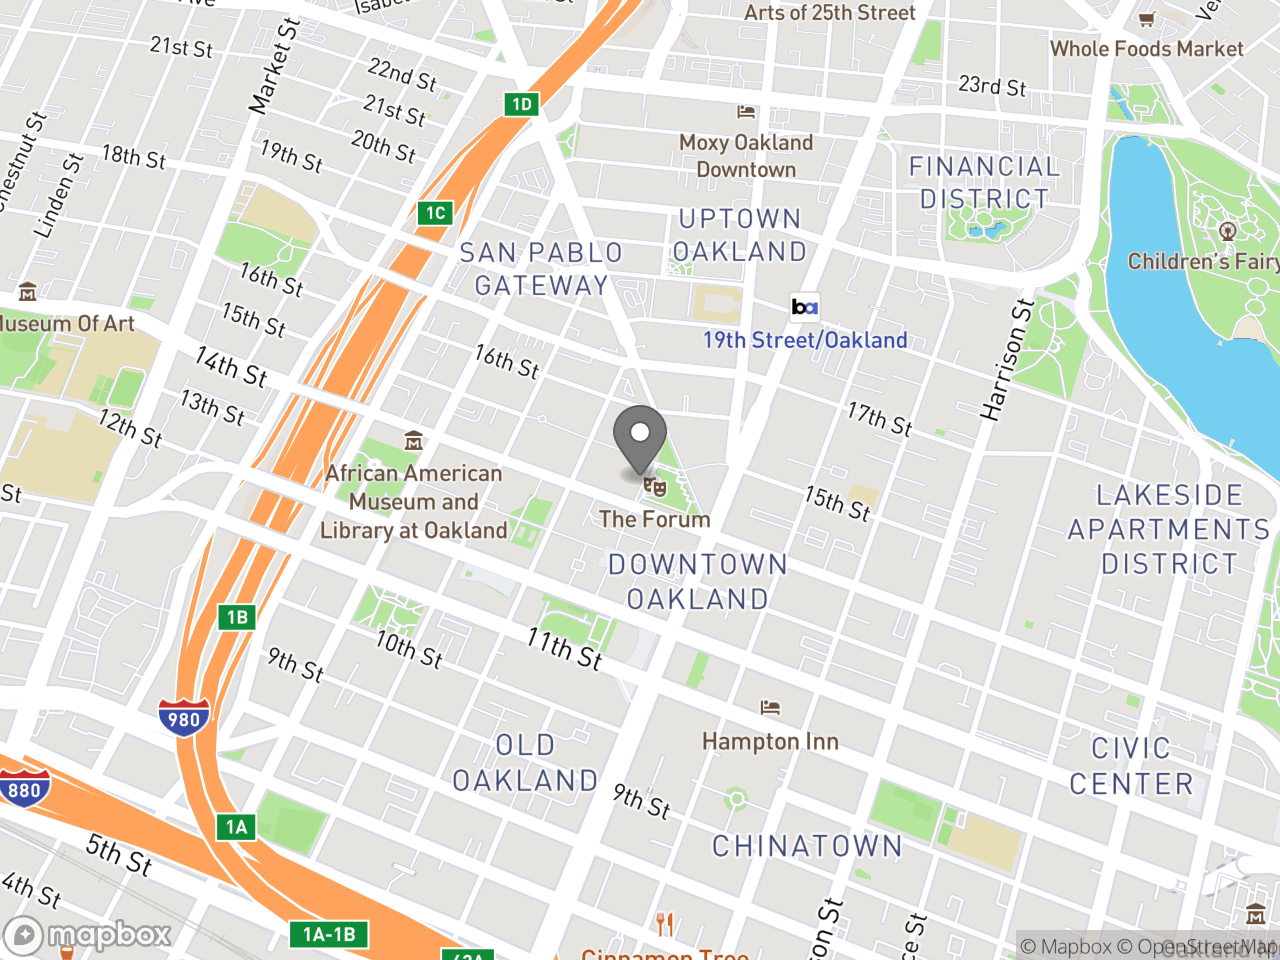 Map image for Privacy Advisory Commission Meeting, located at 1 Frank H. Ogawa Plaza in Oakland, CA 94612